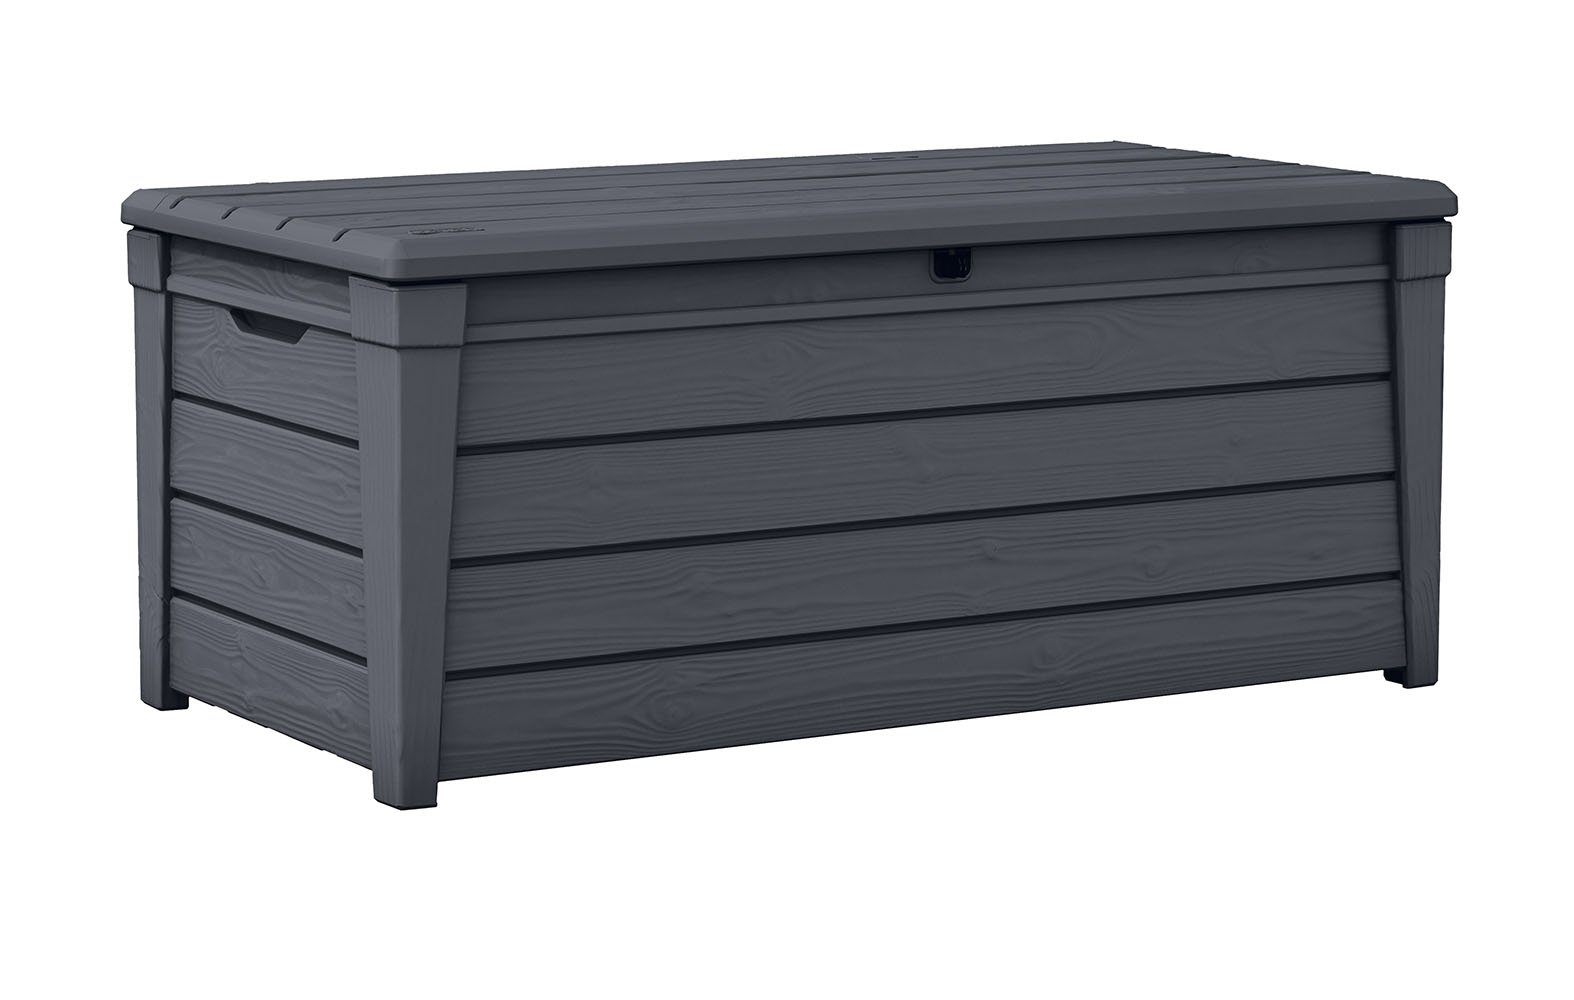 Keter Brightwood 120 Gallon Outdoor Garden Patio Storage Furniture Deck Box, Anthracite by Keter